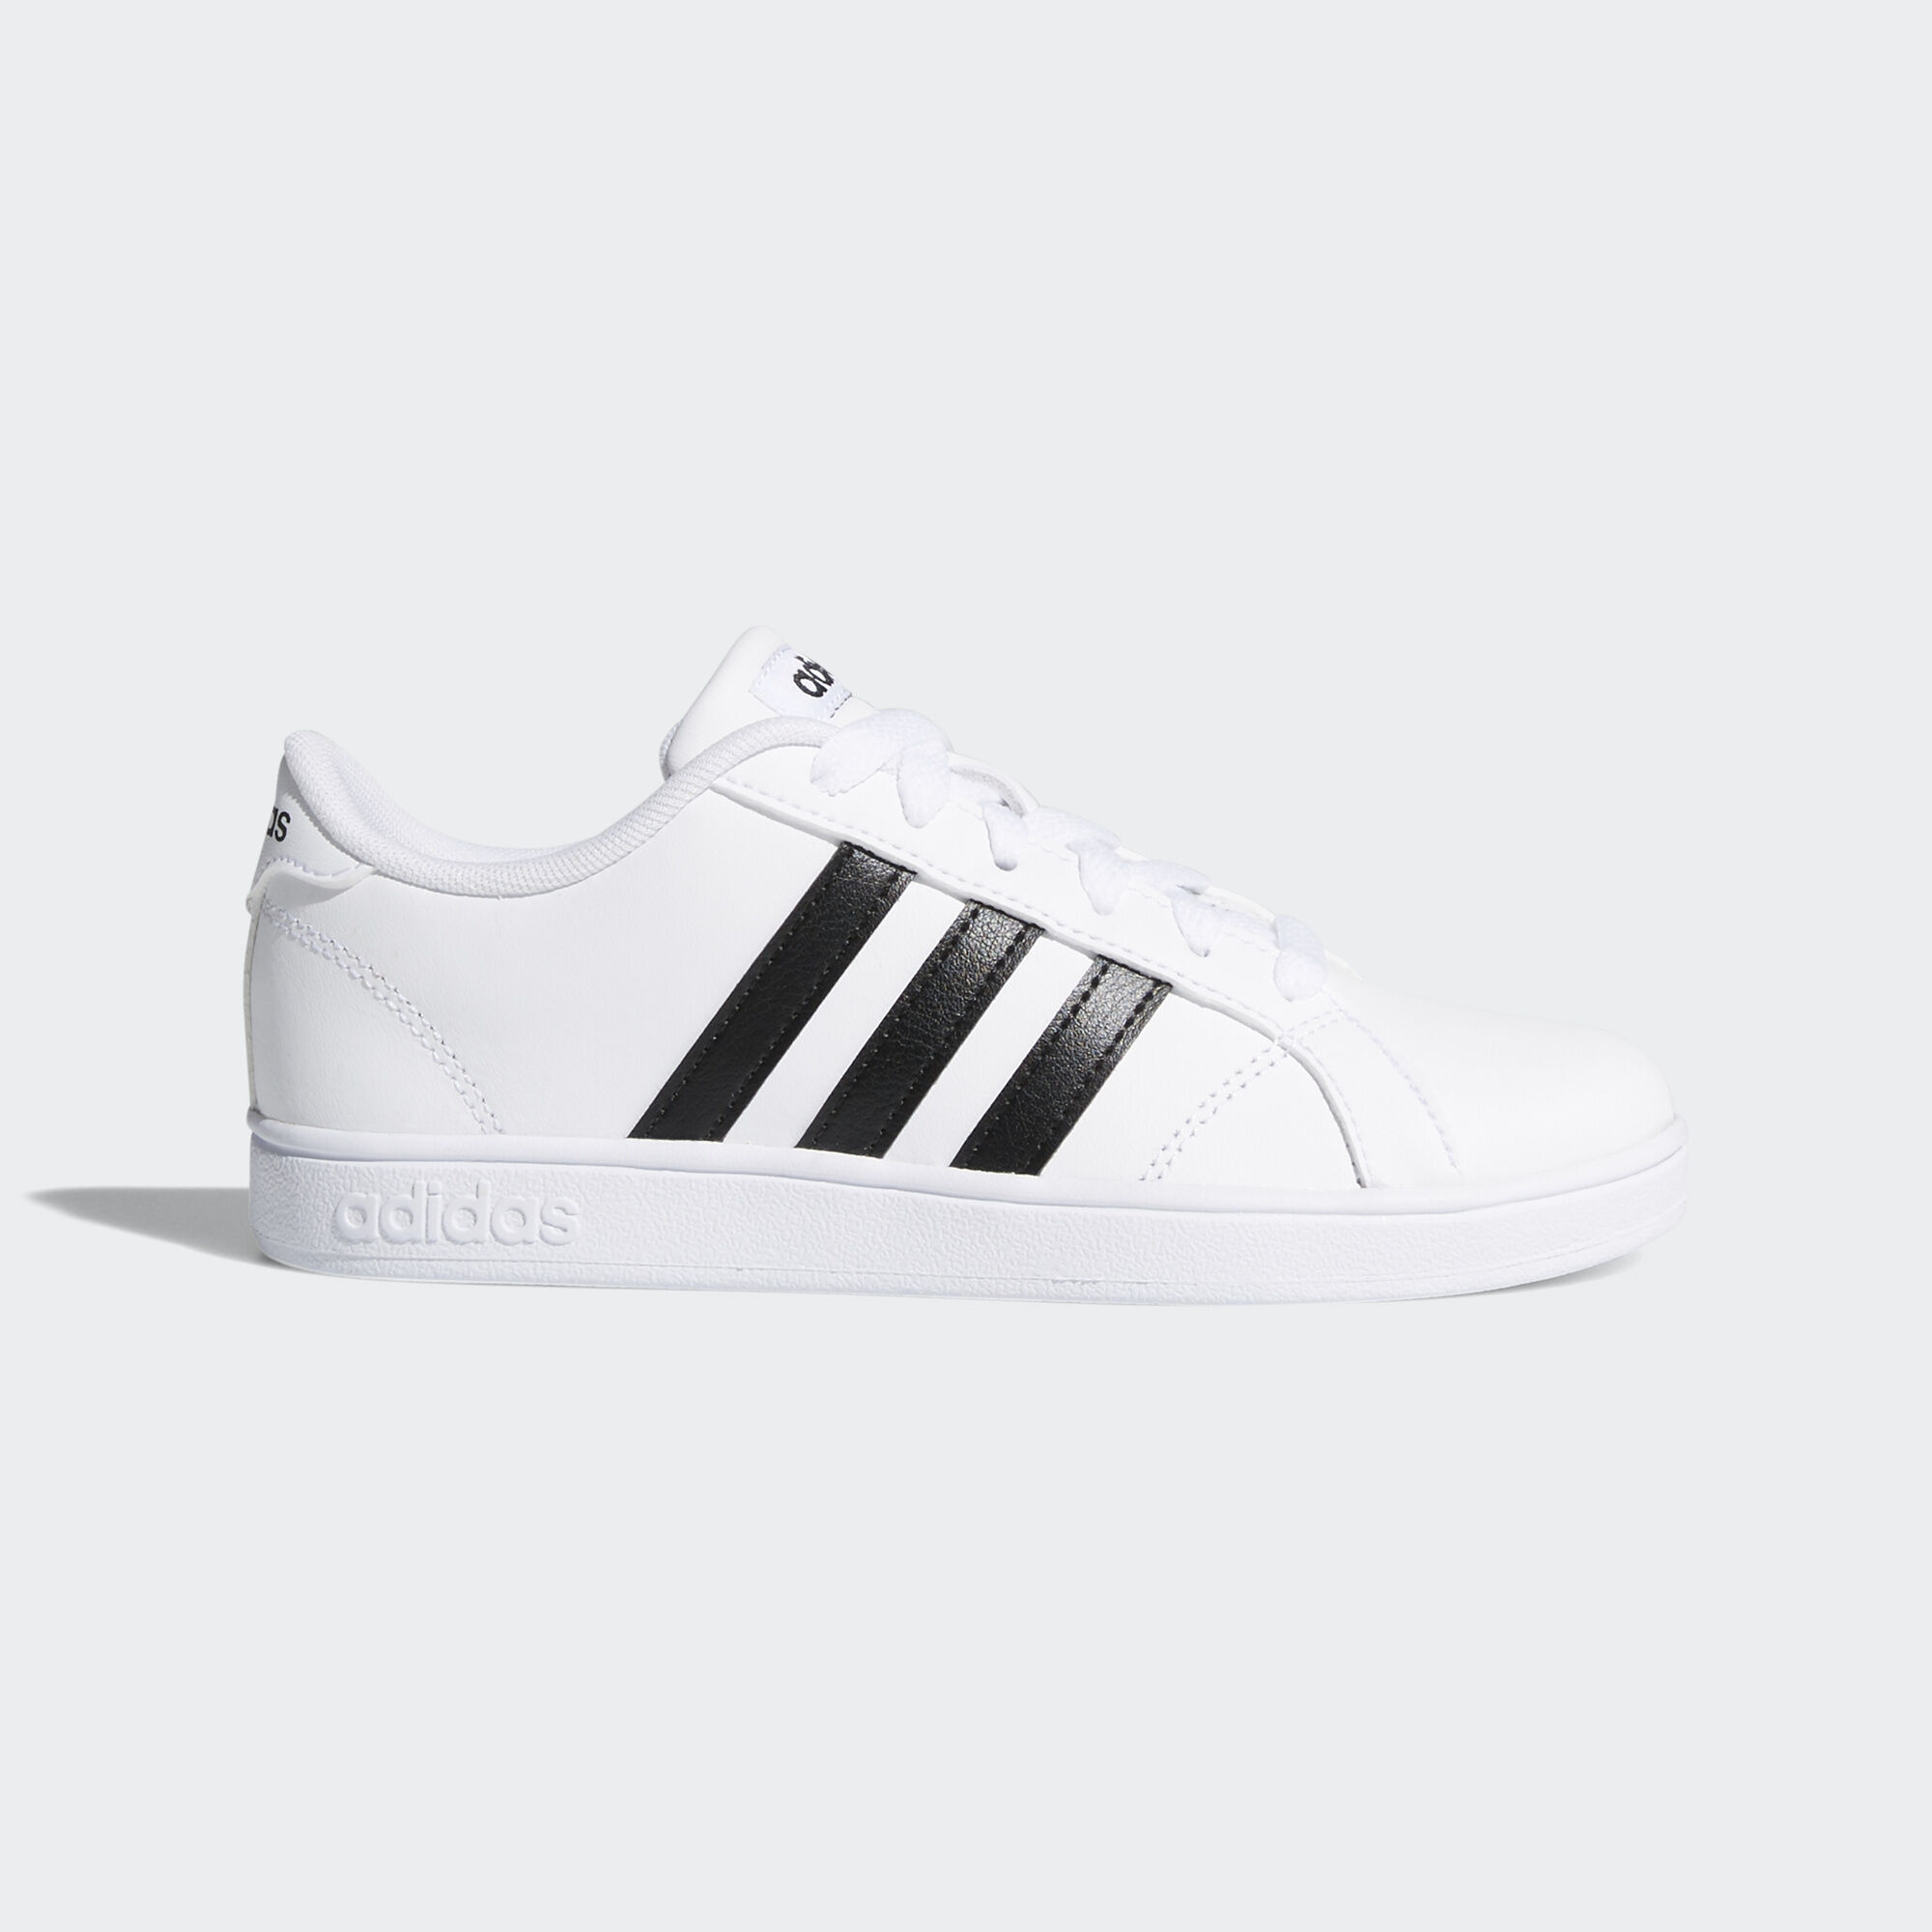 5301a570fff050 ... adidas - Baseline Shoes Running White Ftw   Black   Running White AW4299